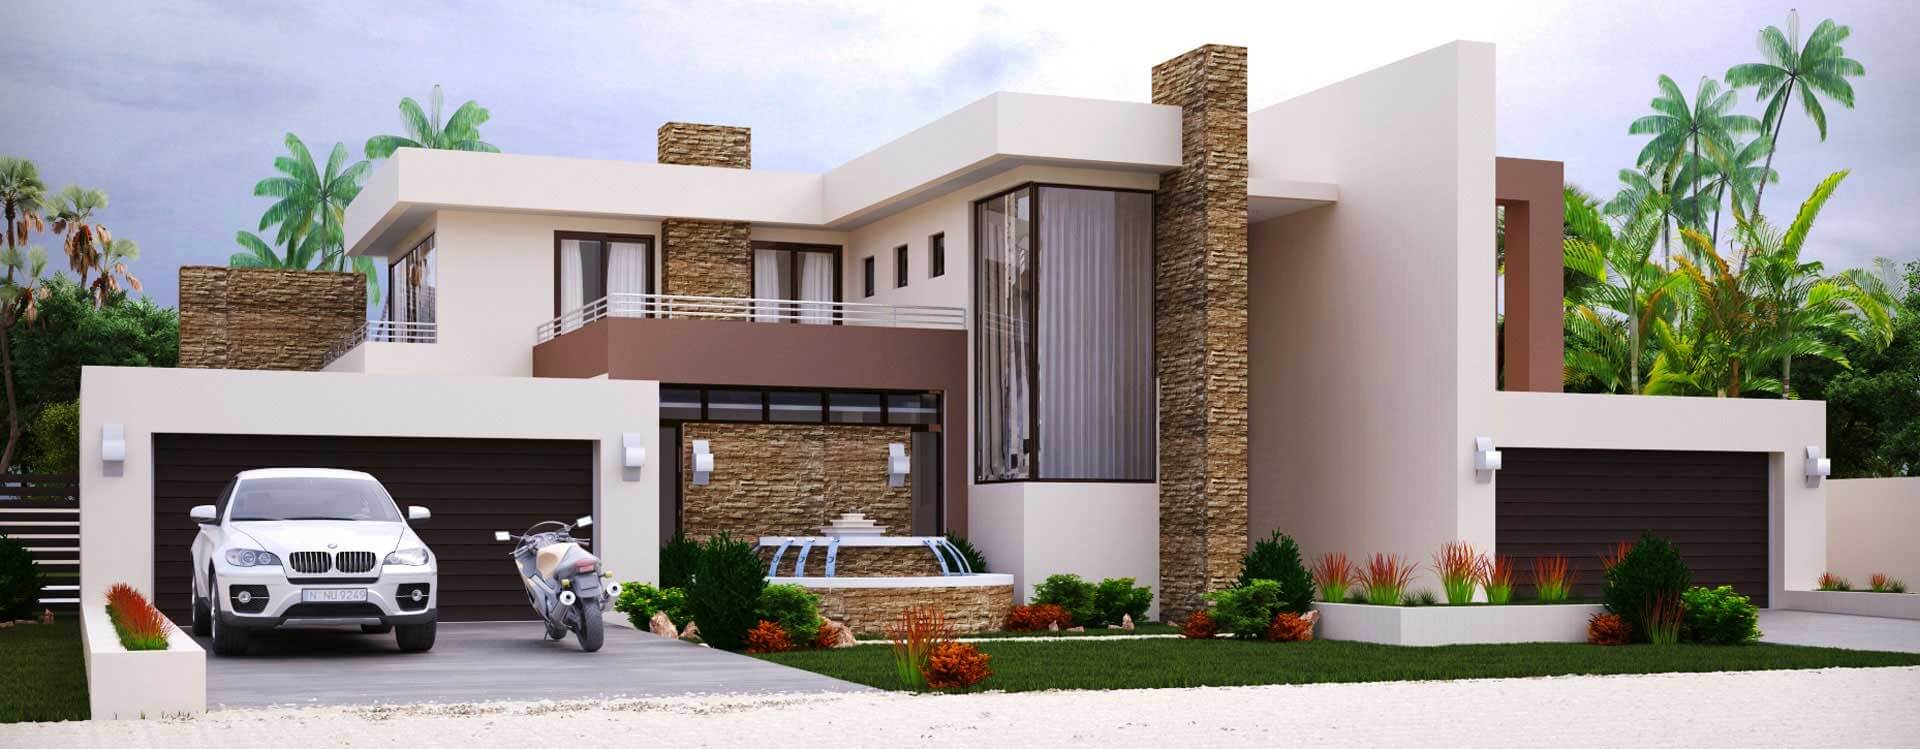 Pictures And Plans Of Modern Houses In South Africa